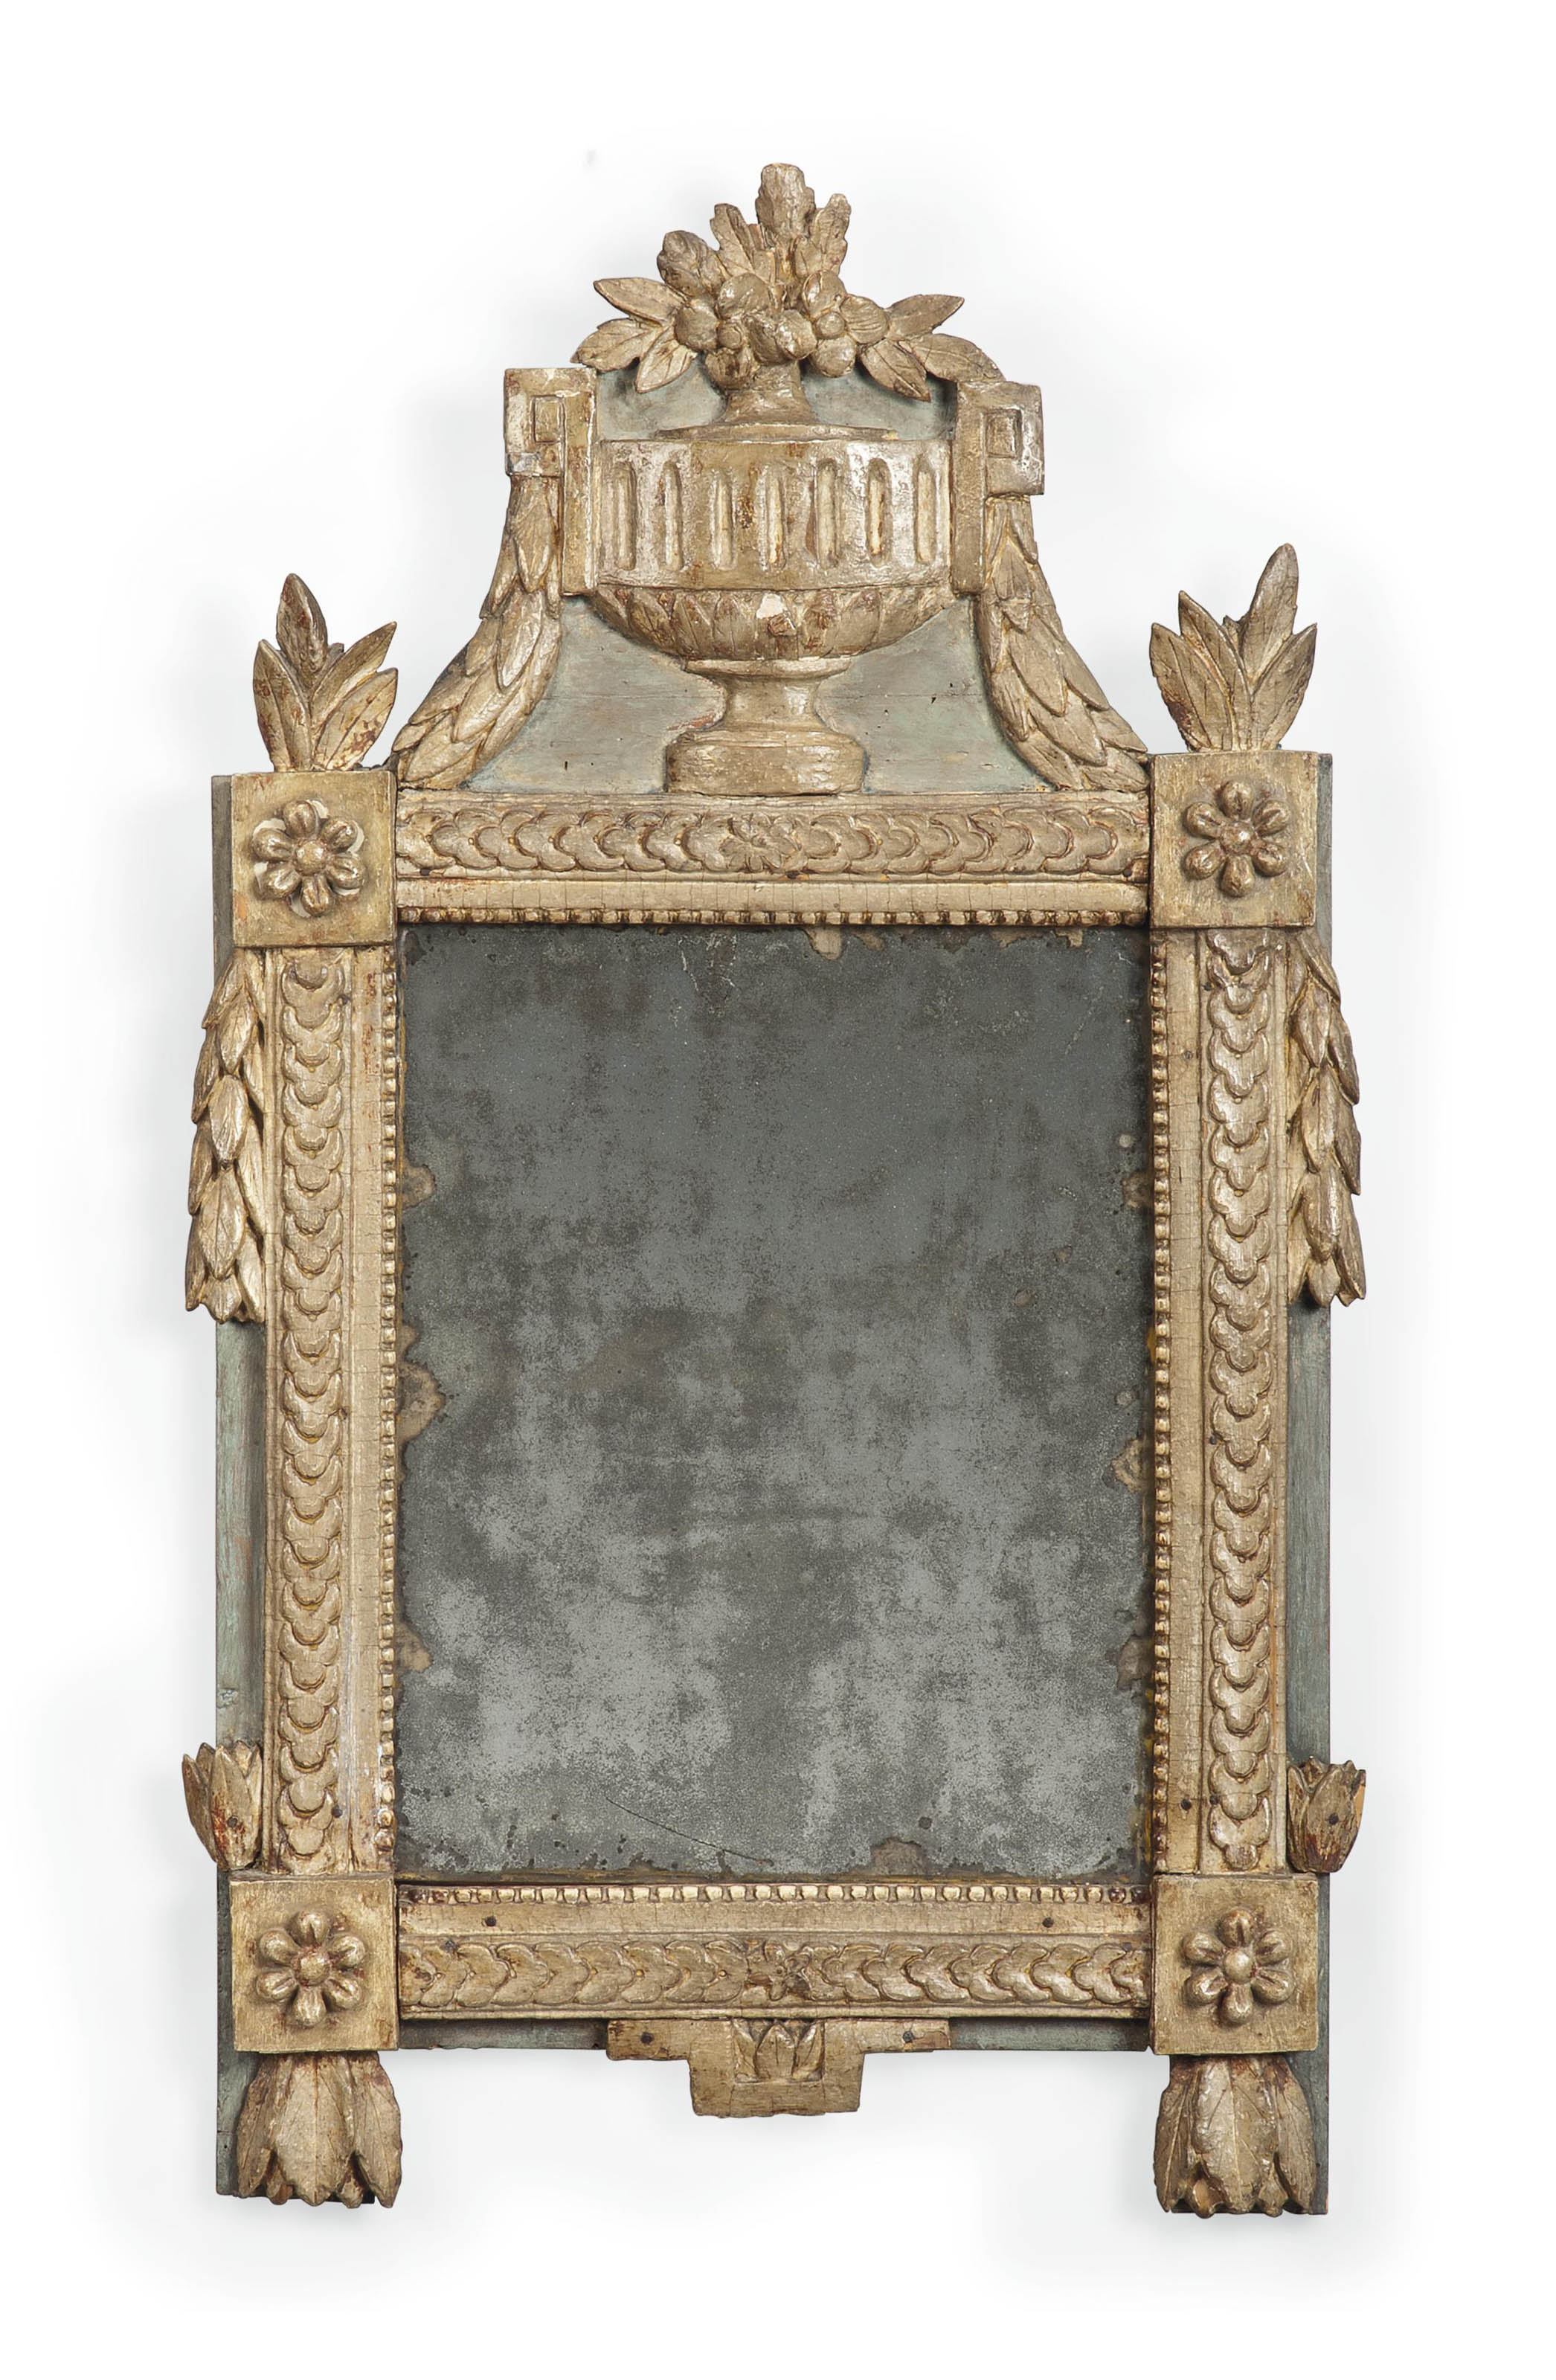 A FRENCH PAINTED MIRROR